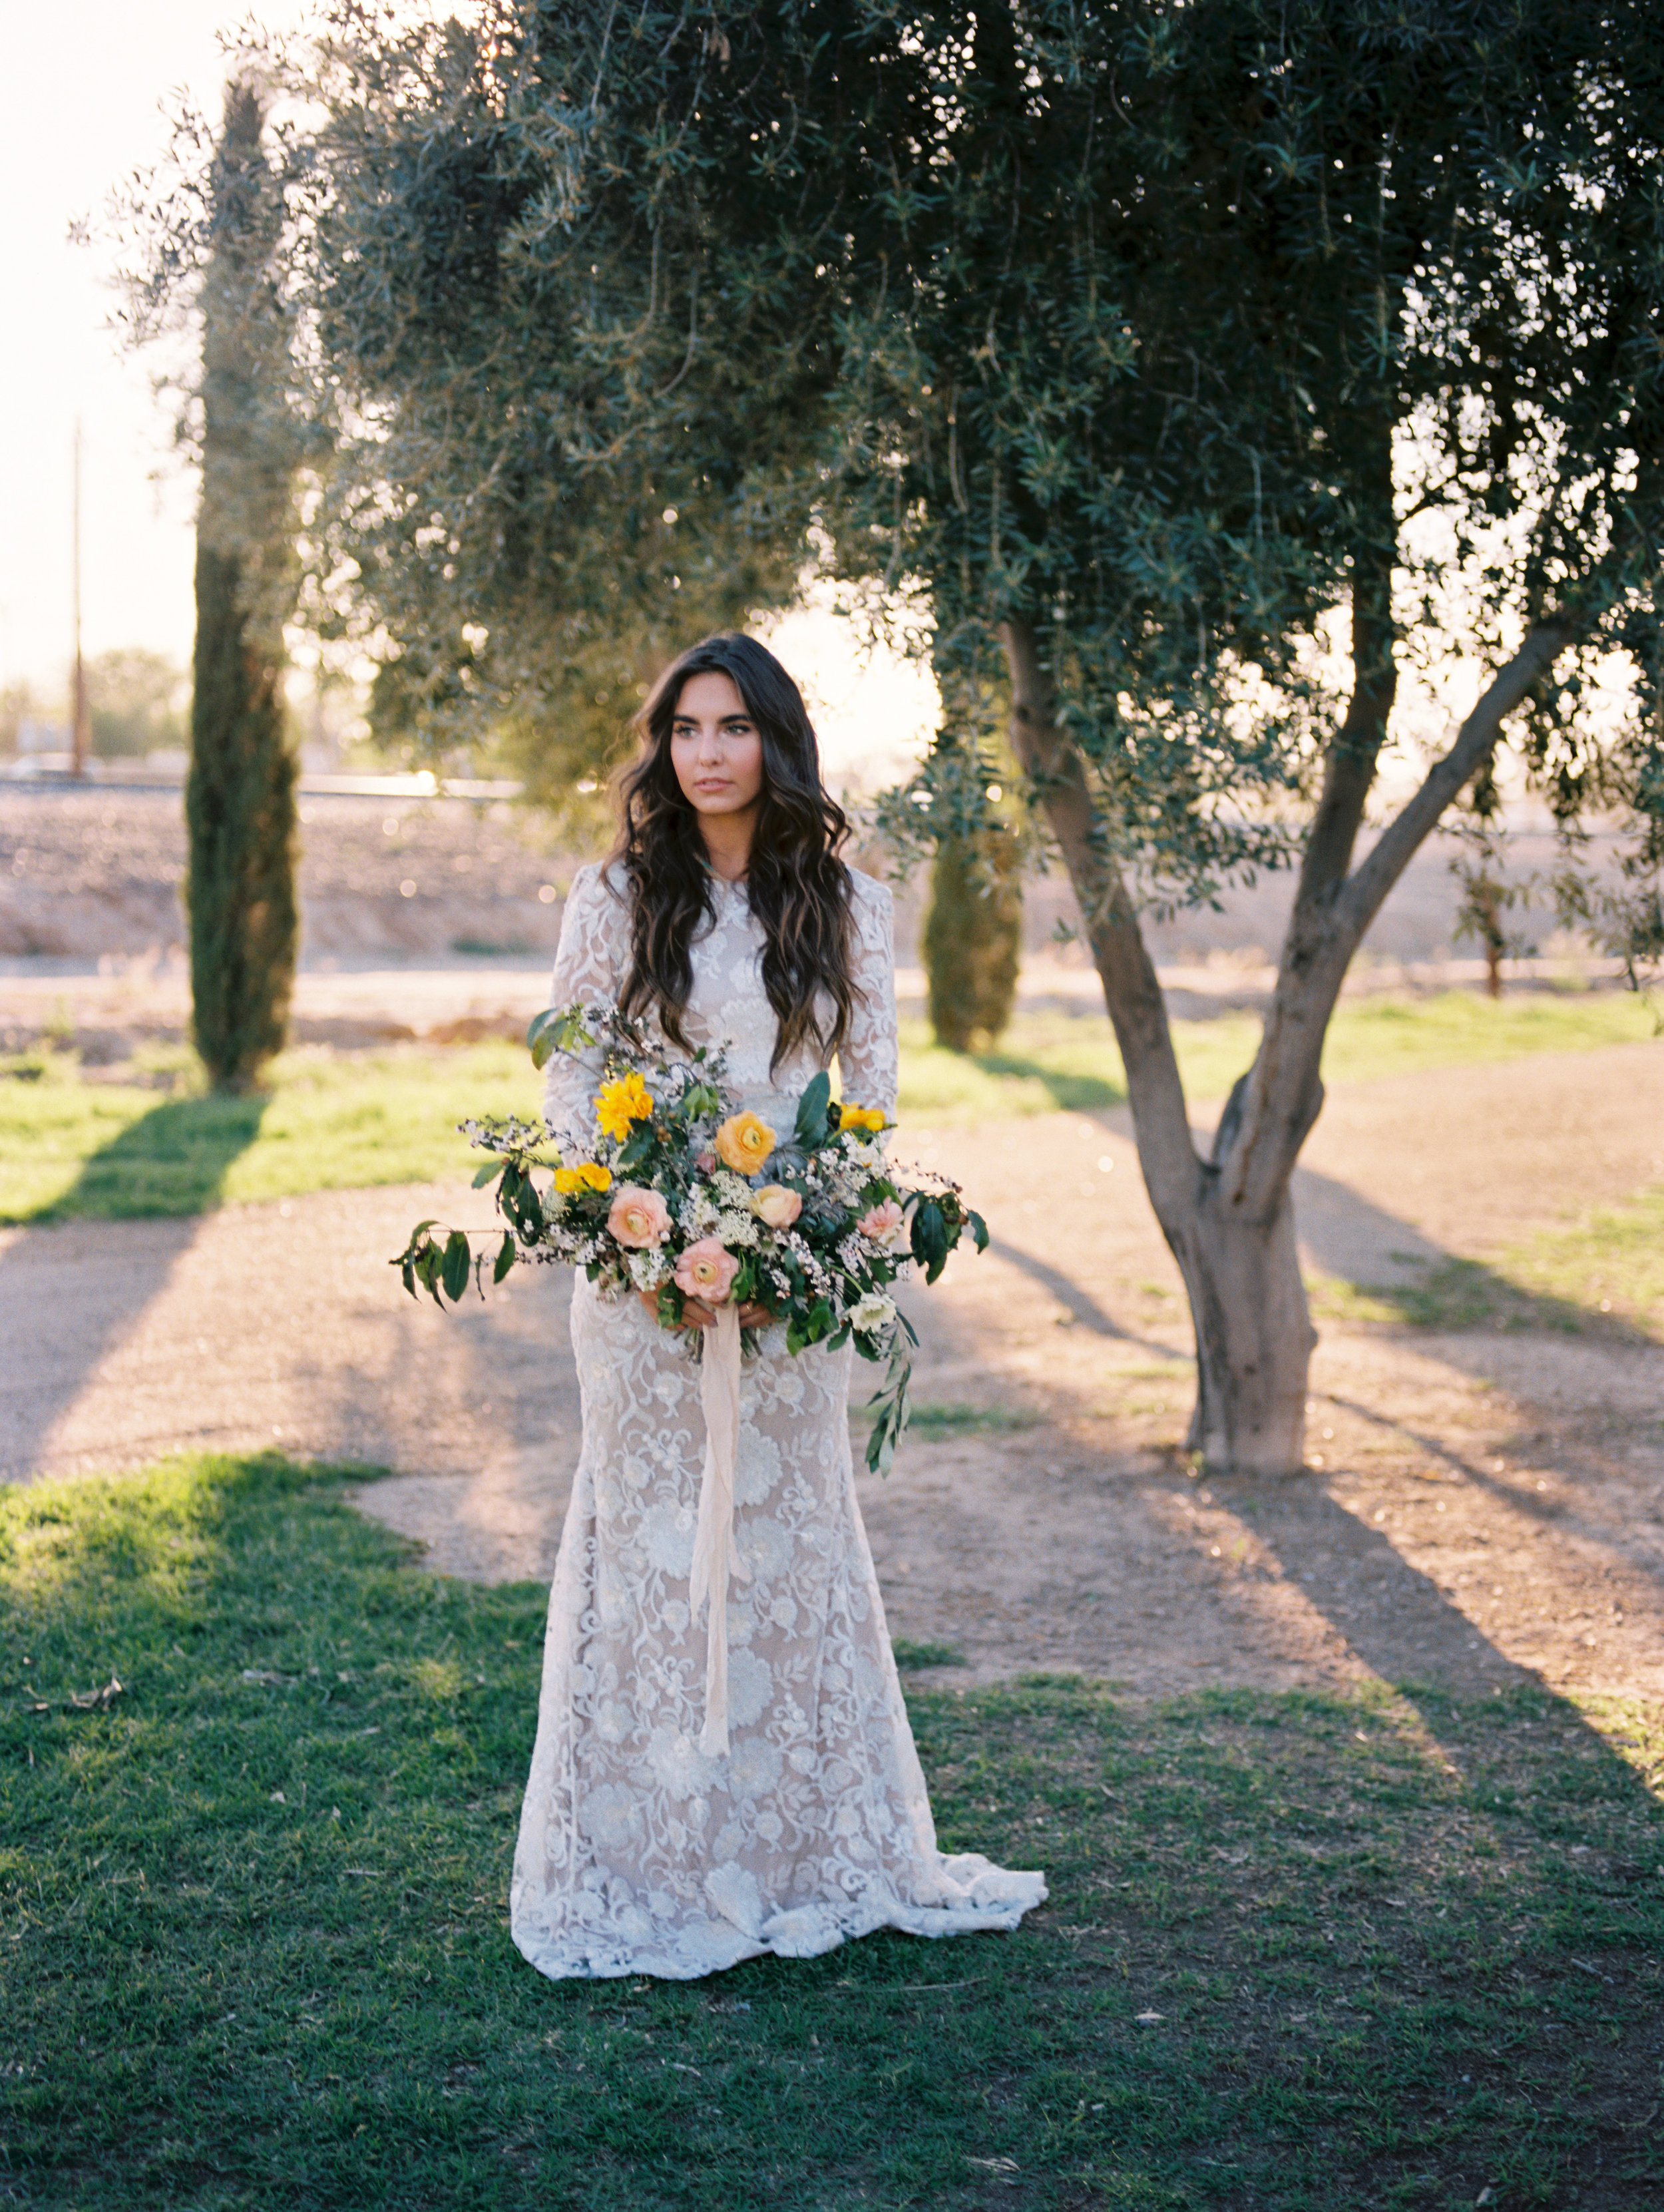 Olive Mill Wedding Inspiration - Boho Gown and wild bouquet